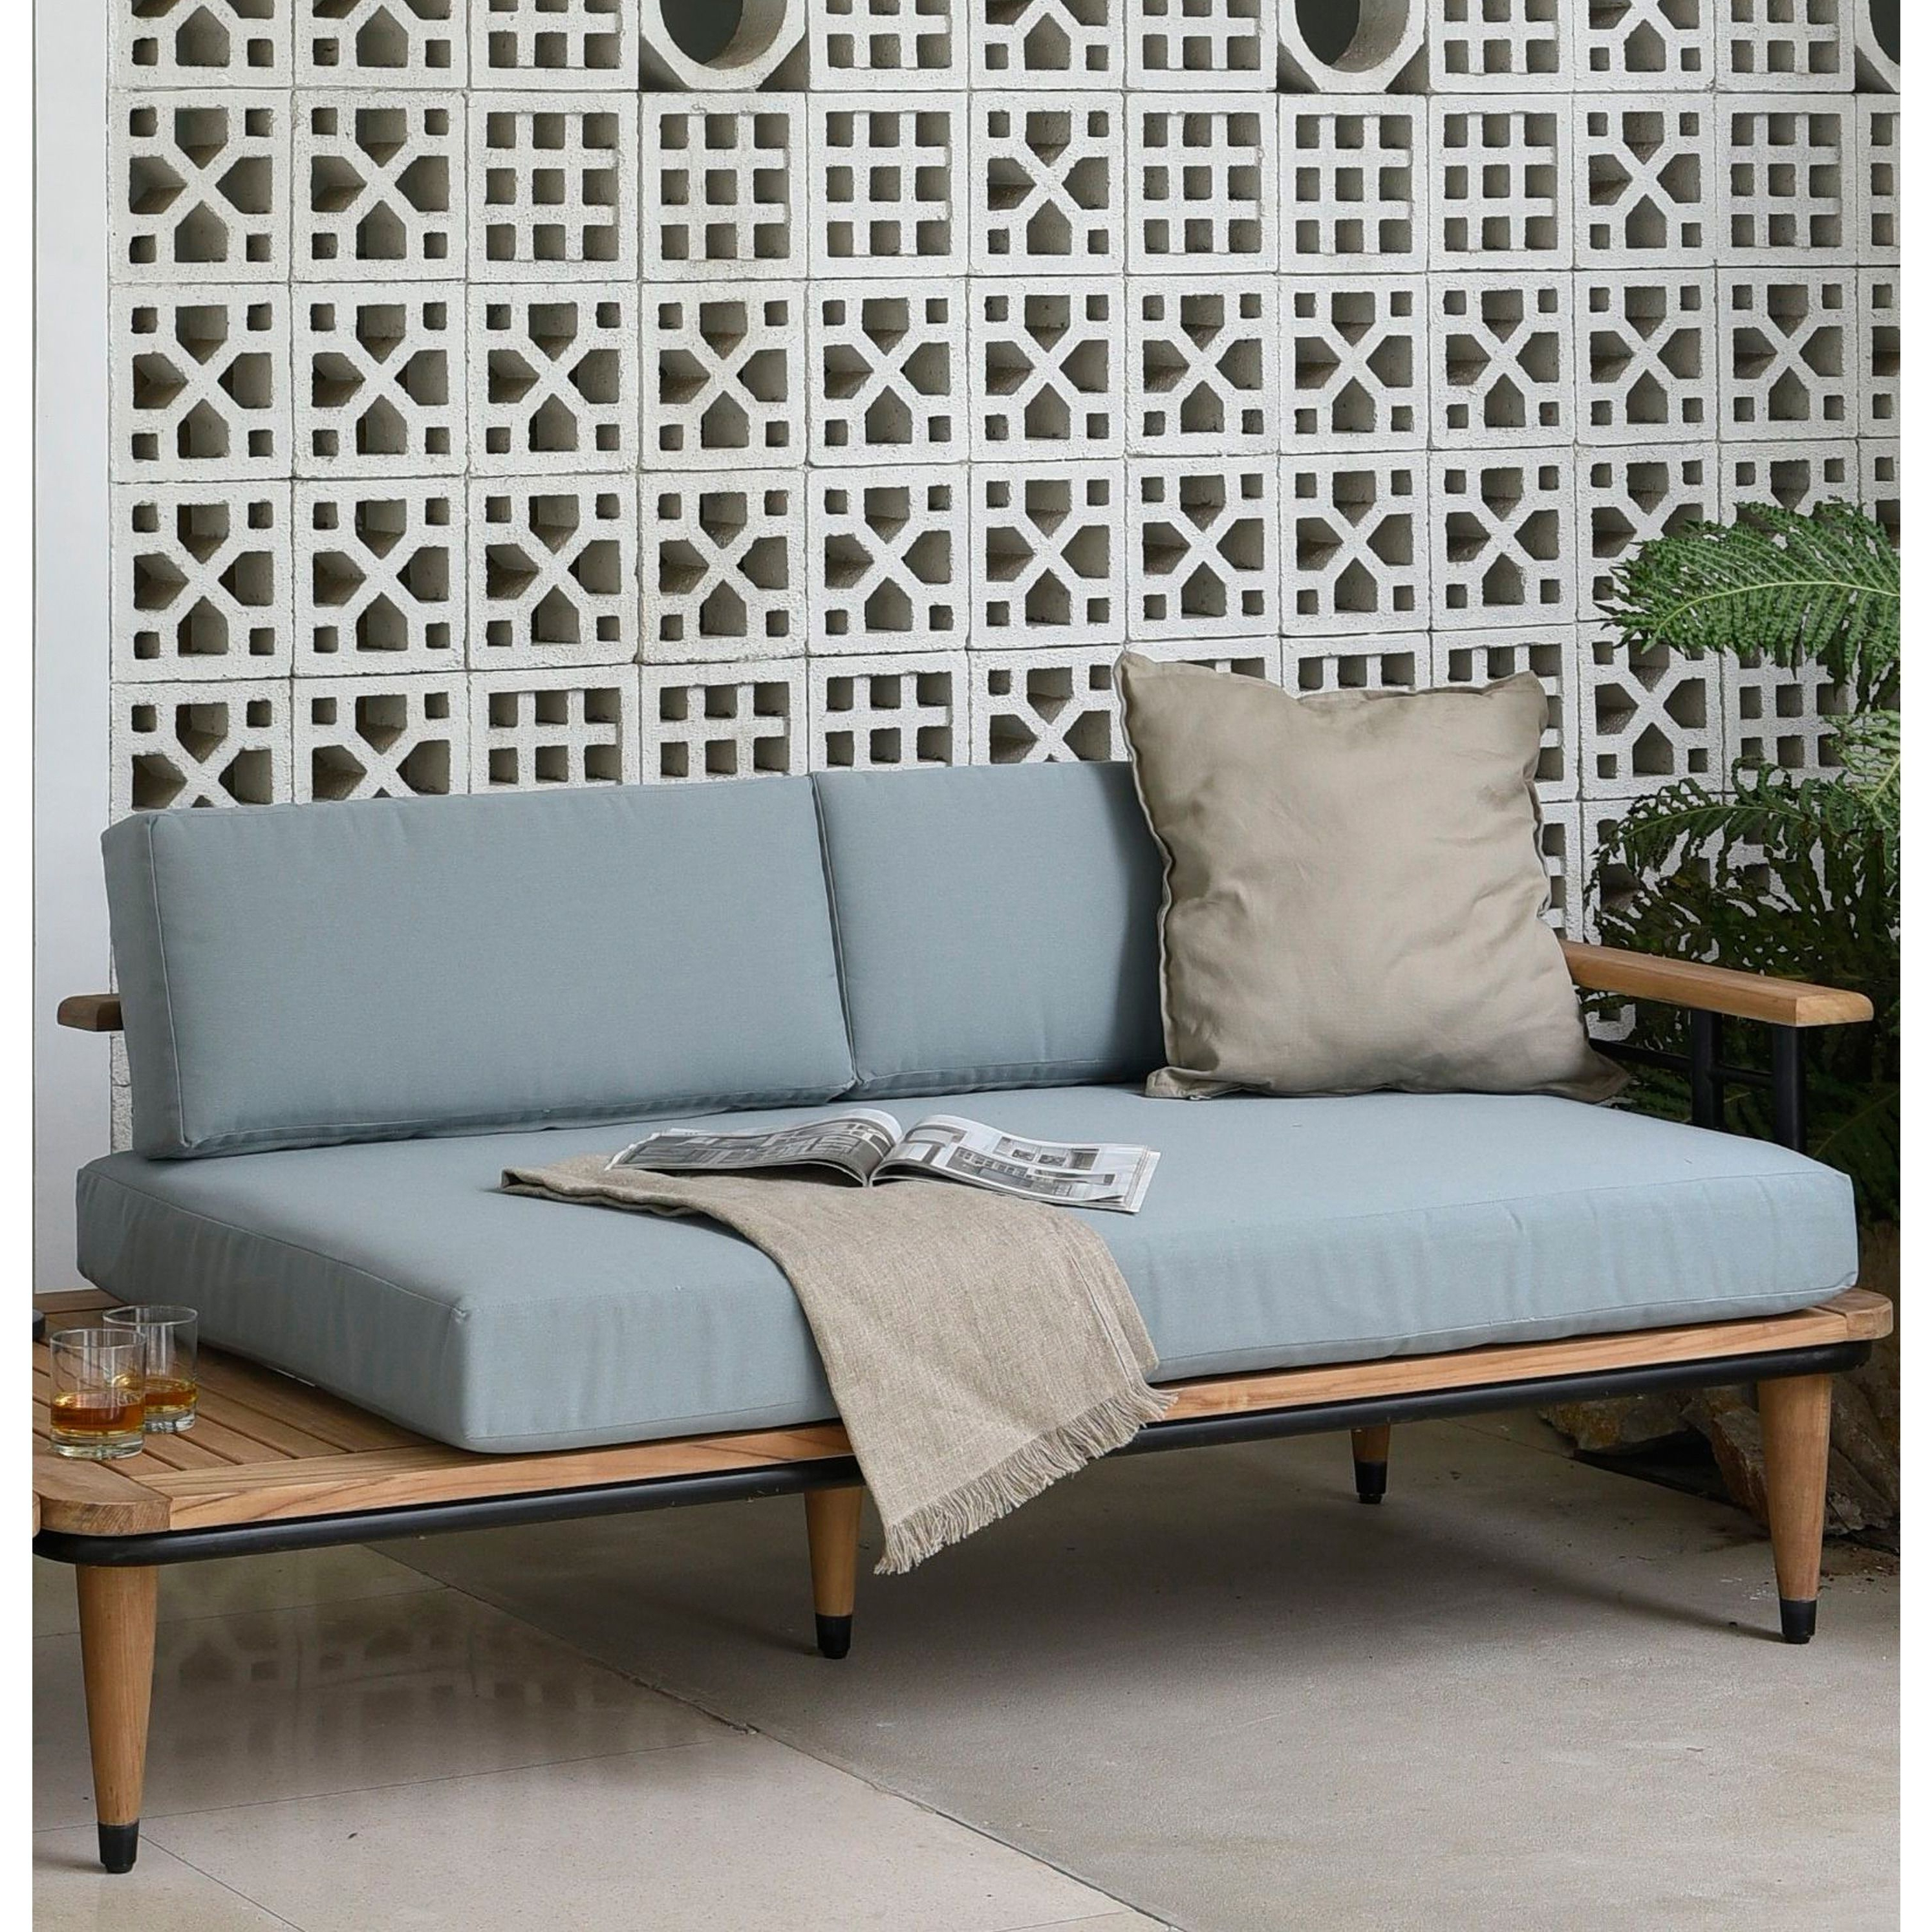 Cambridge Casual Kokomo Teak Metal Loveseat With Blue Regarding Best And Newest Clary Teak Lounge Patio Daybeds With Cushion (View 13 of 20)